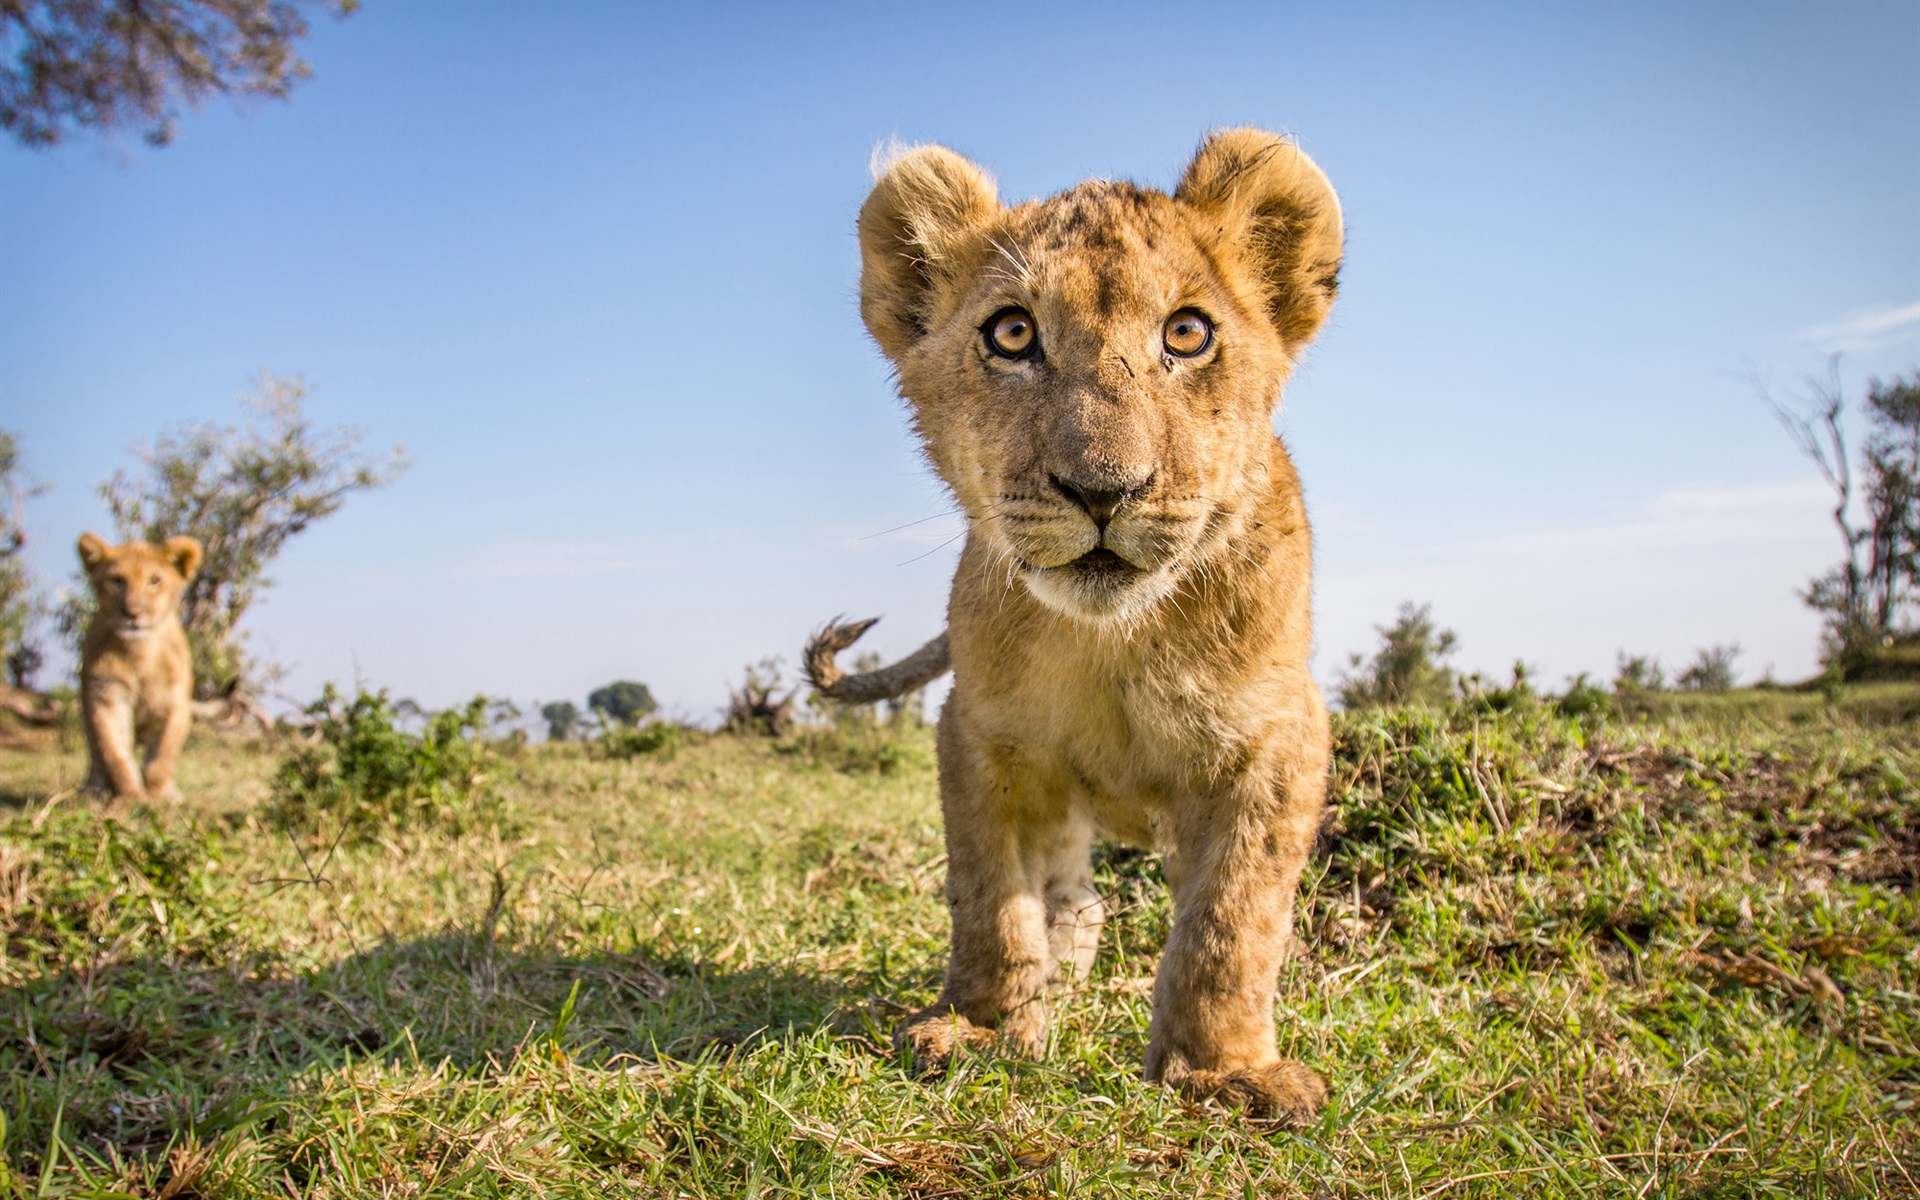 Wallpaper Wildlife Cute Lion Cub Front View 1920x1200 Hd Picture Image